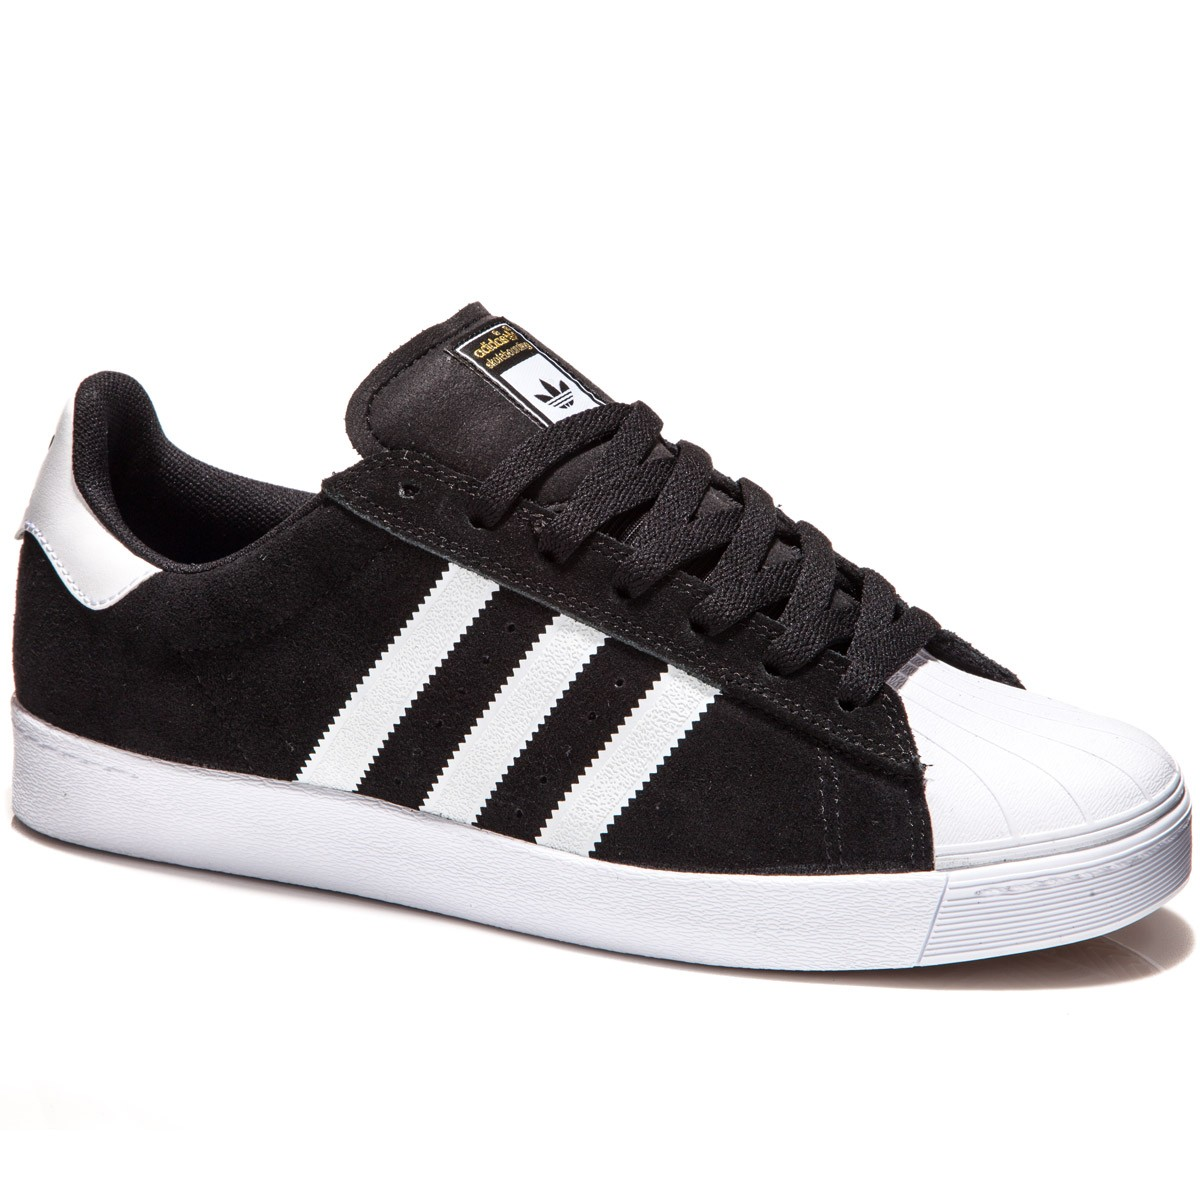 adidas superstar original logo trainers sale